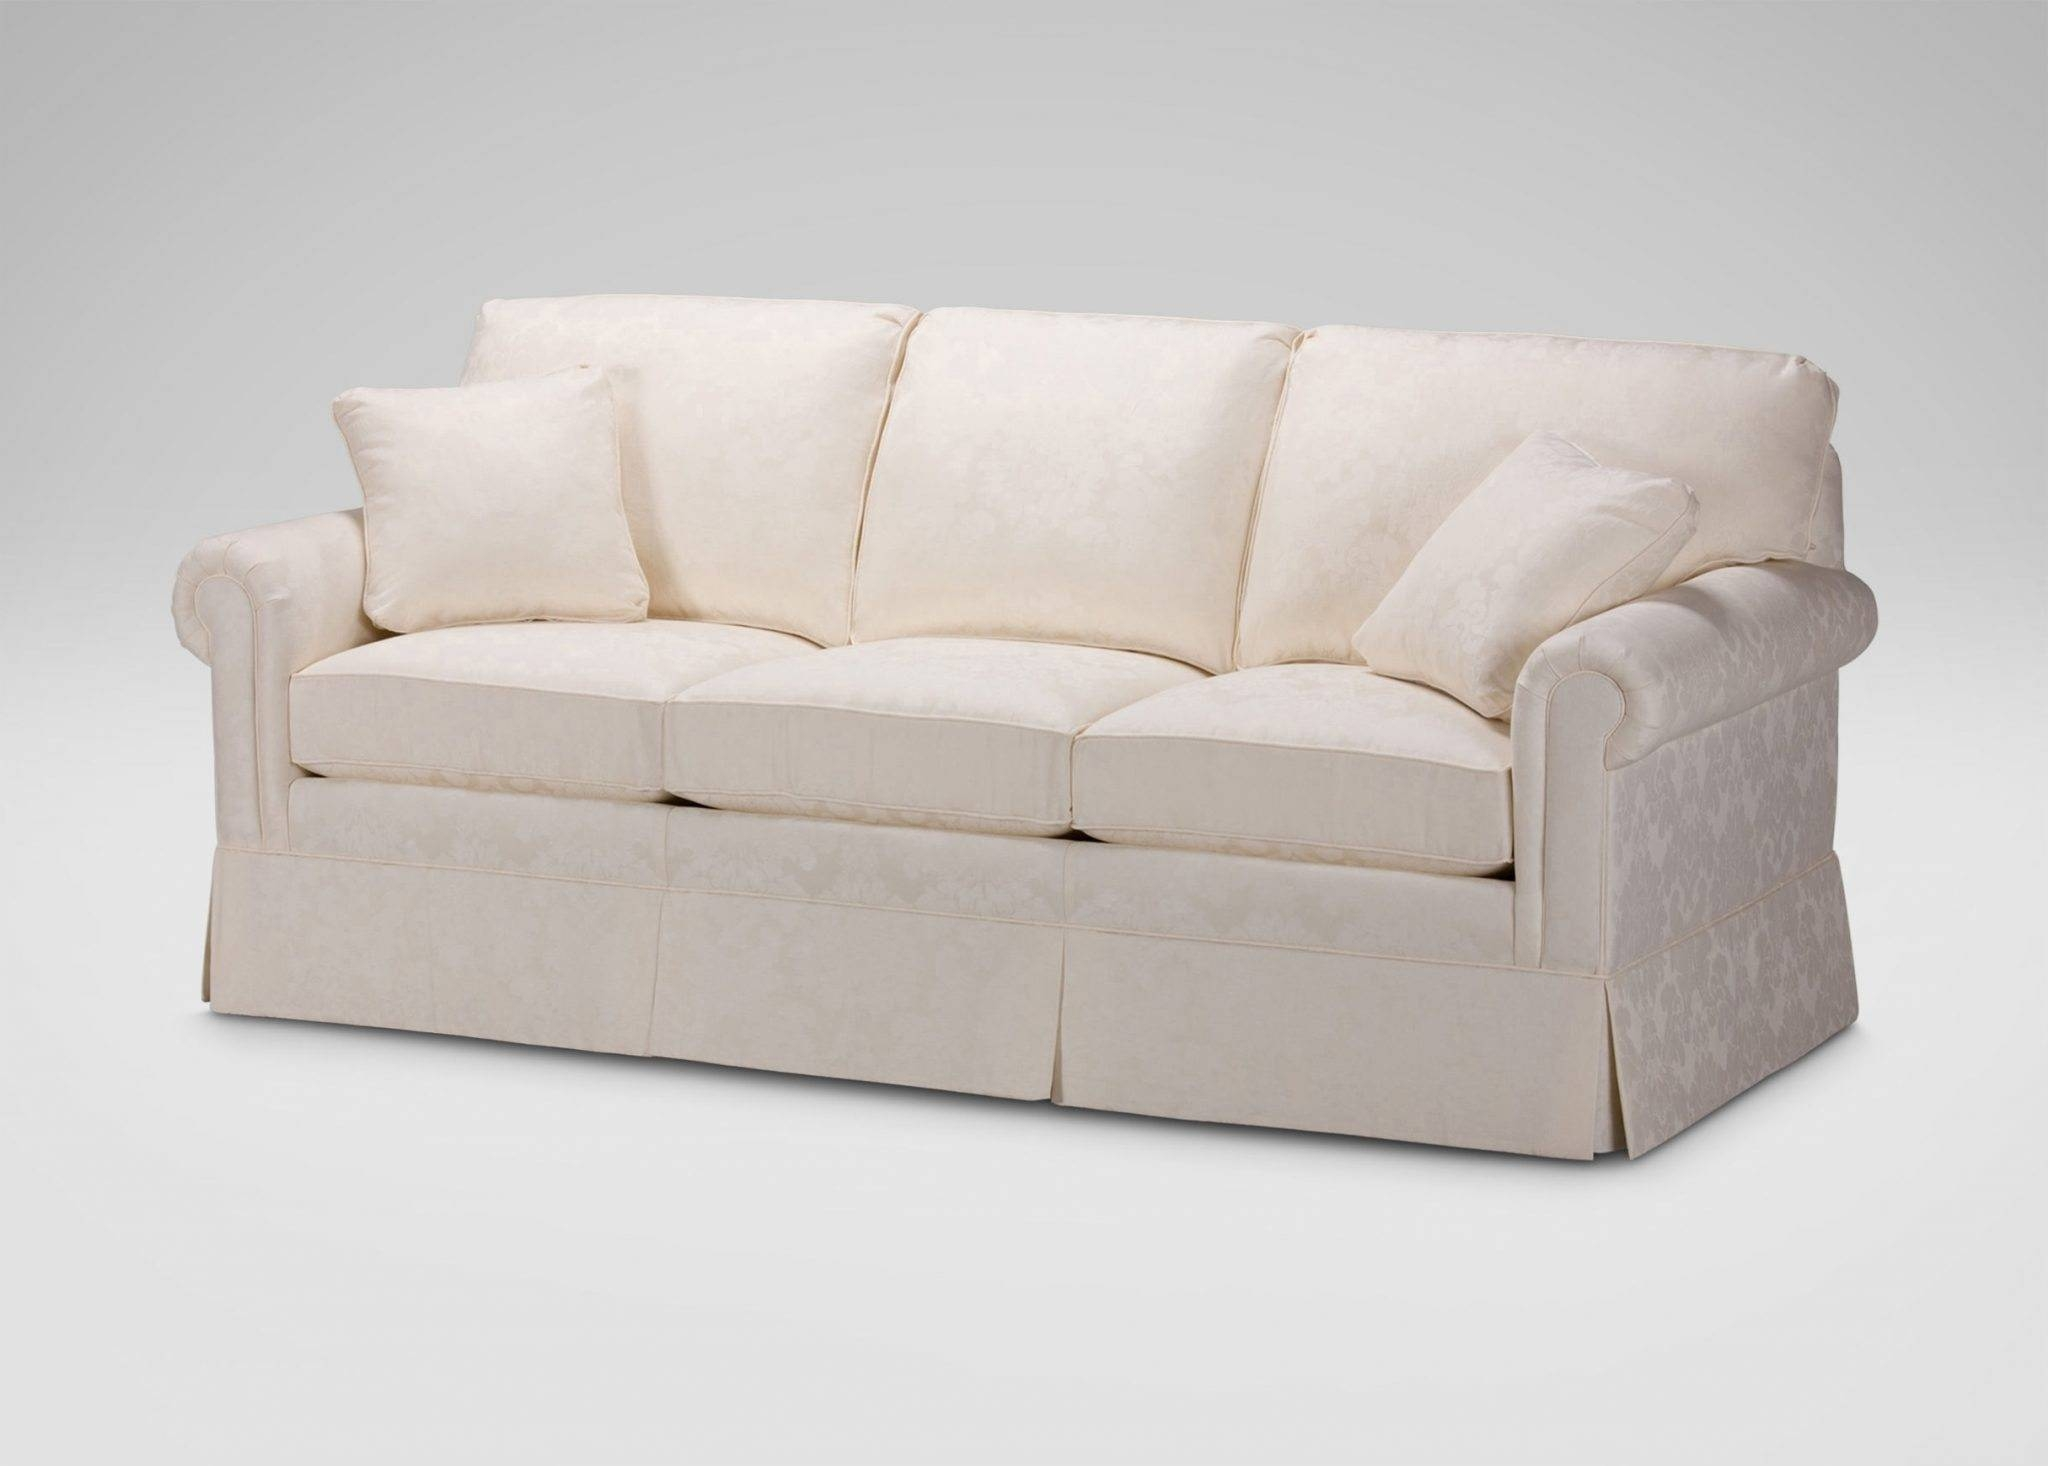 Furniture: Couch Ethan Allen | Ethan Allen Bennett Sofa | Ethan With Regard To Ethan Allen Sectional Sofas (View 6 of 15)